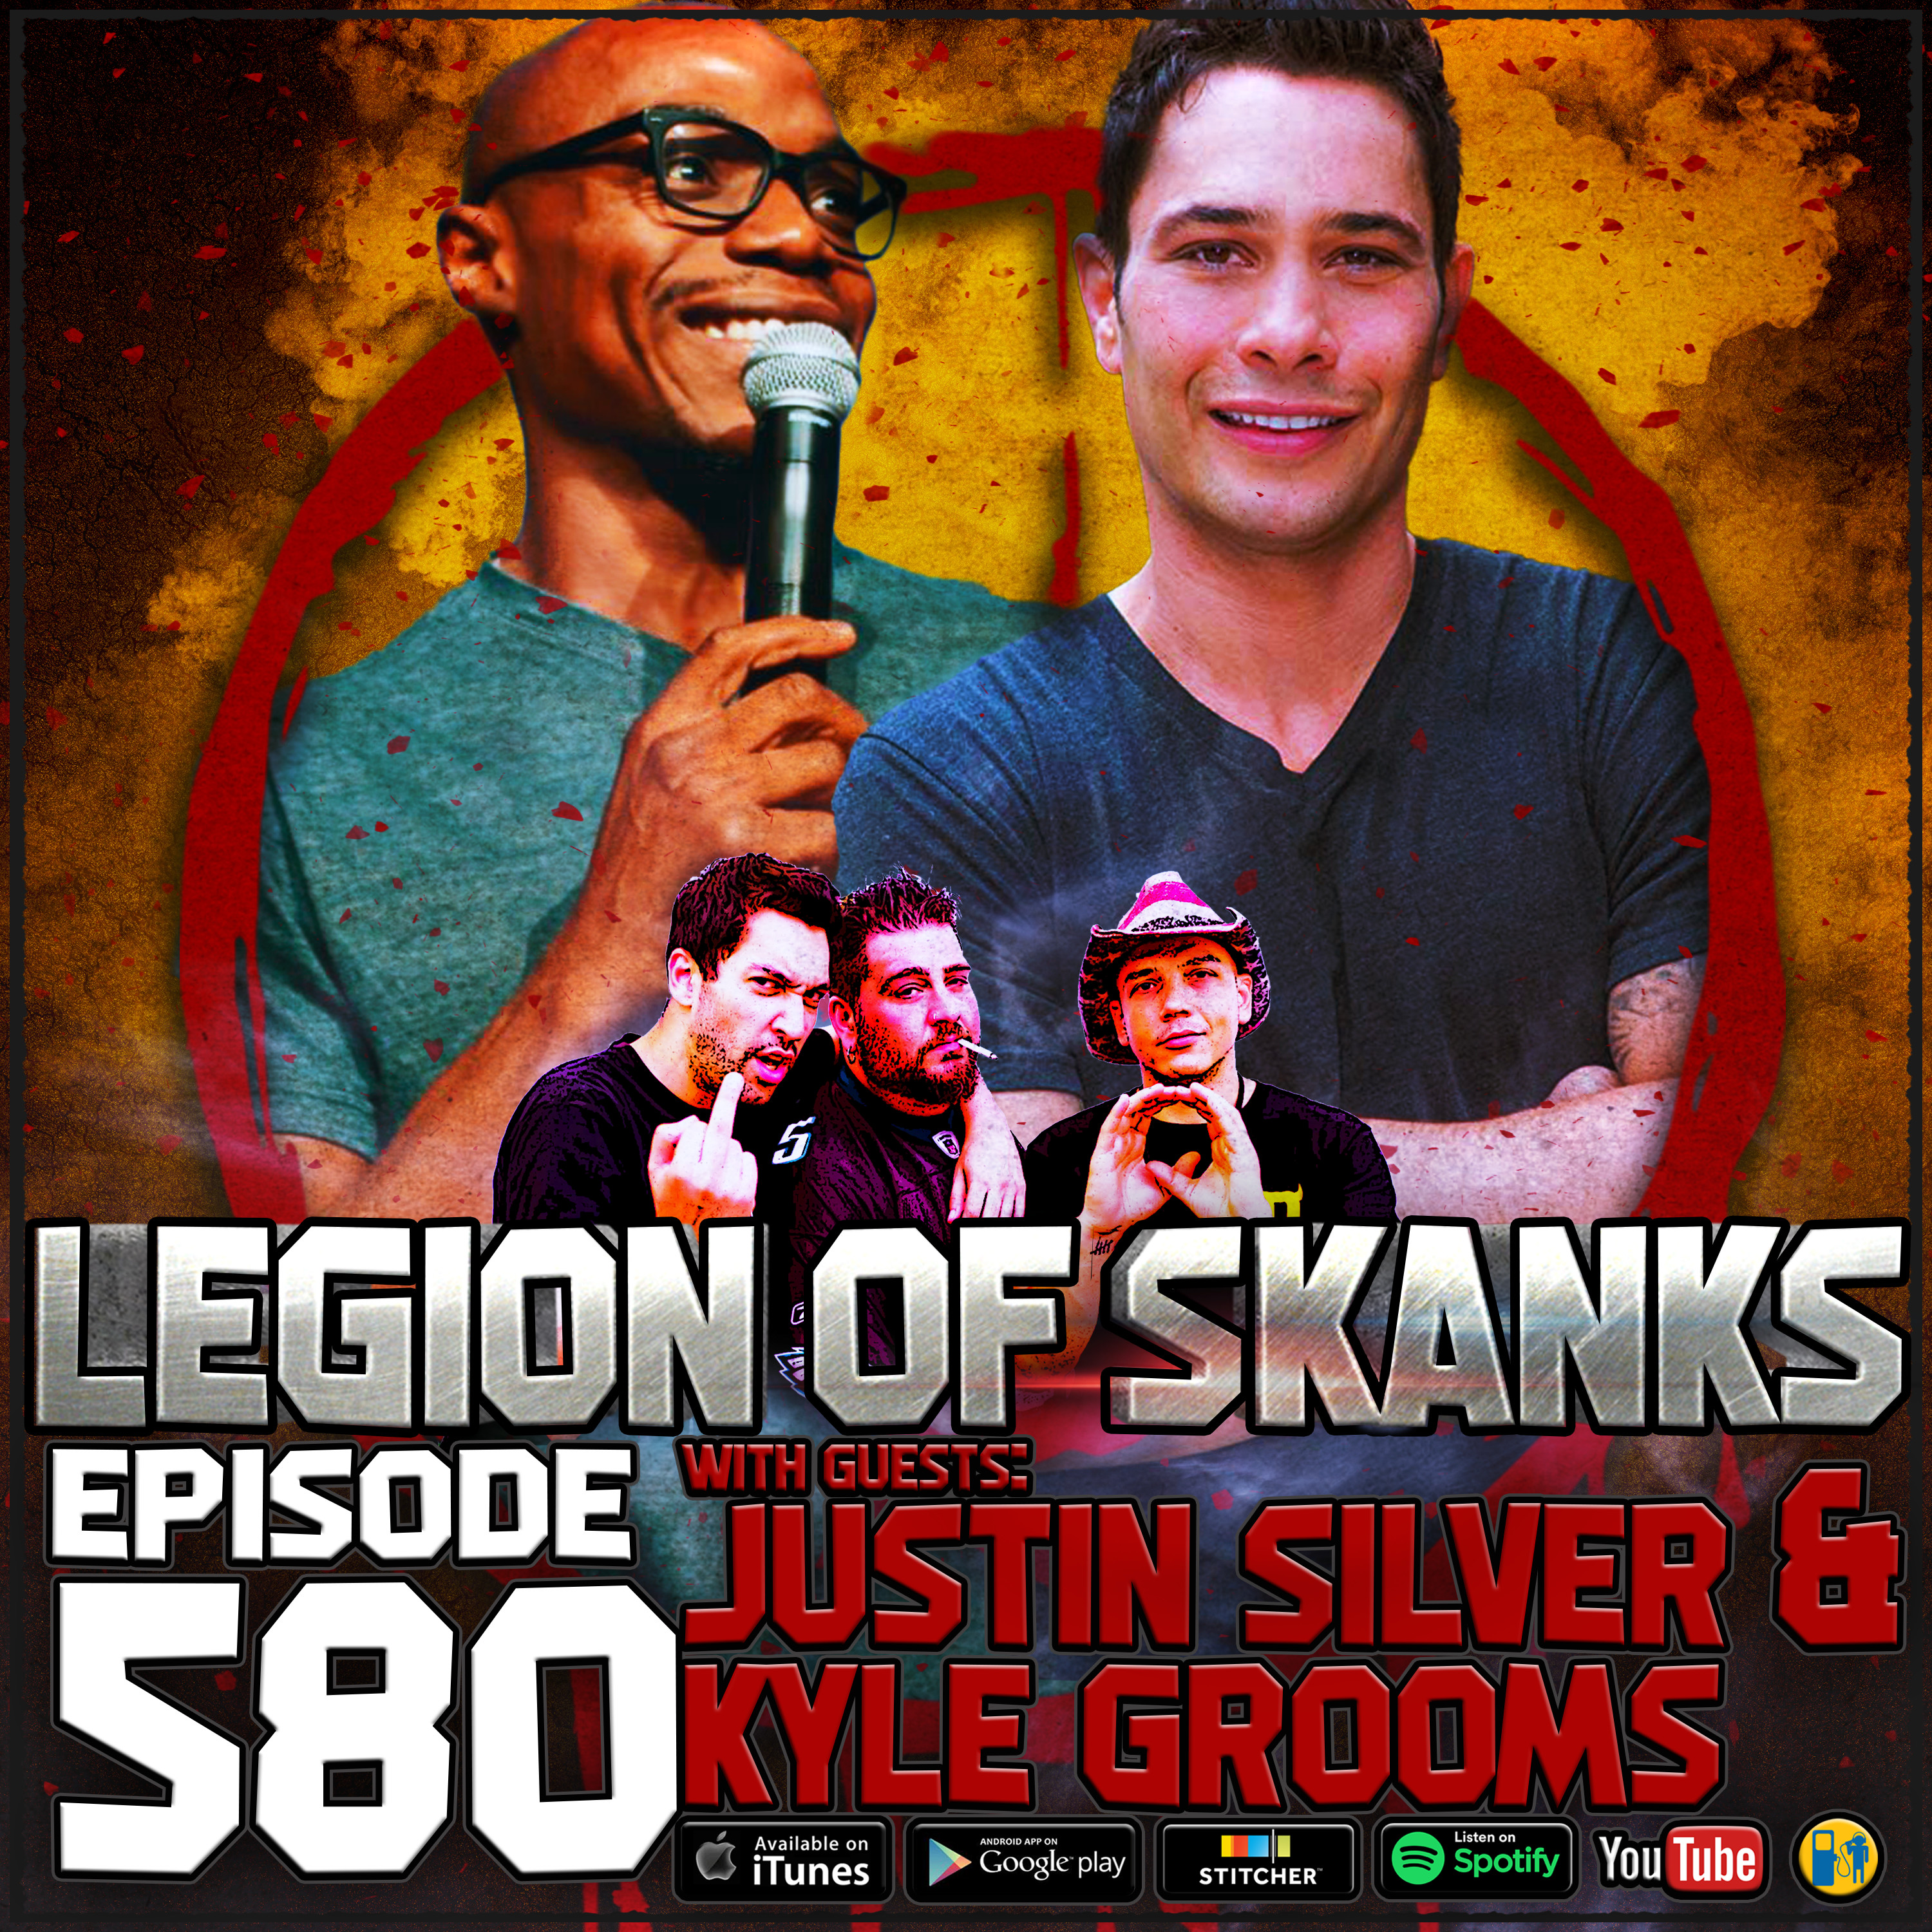 Episode #580 - Are You A Winner? - Justin Silver & Kyle Grooms